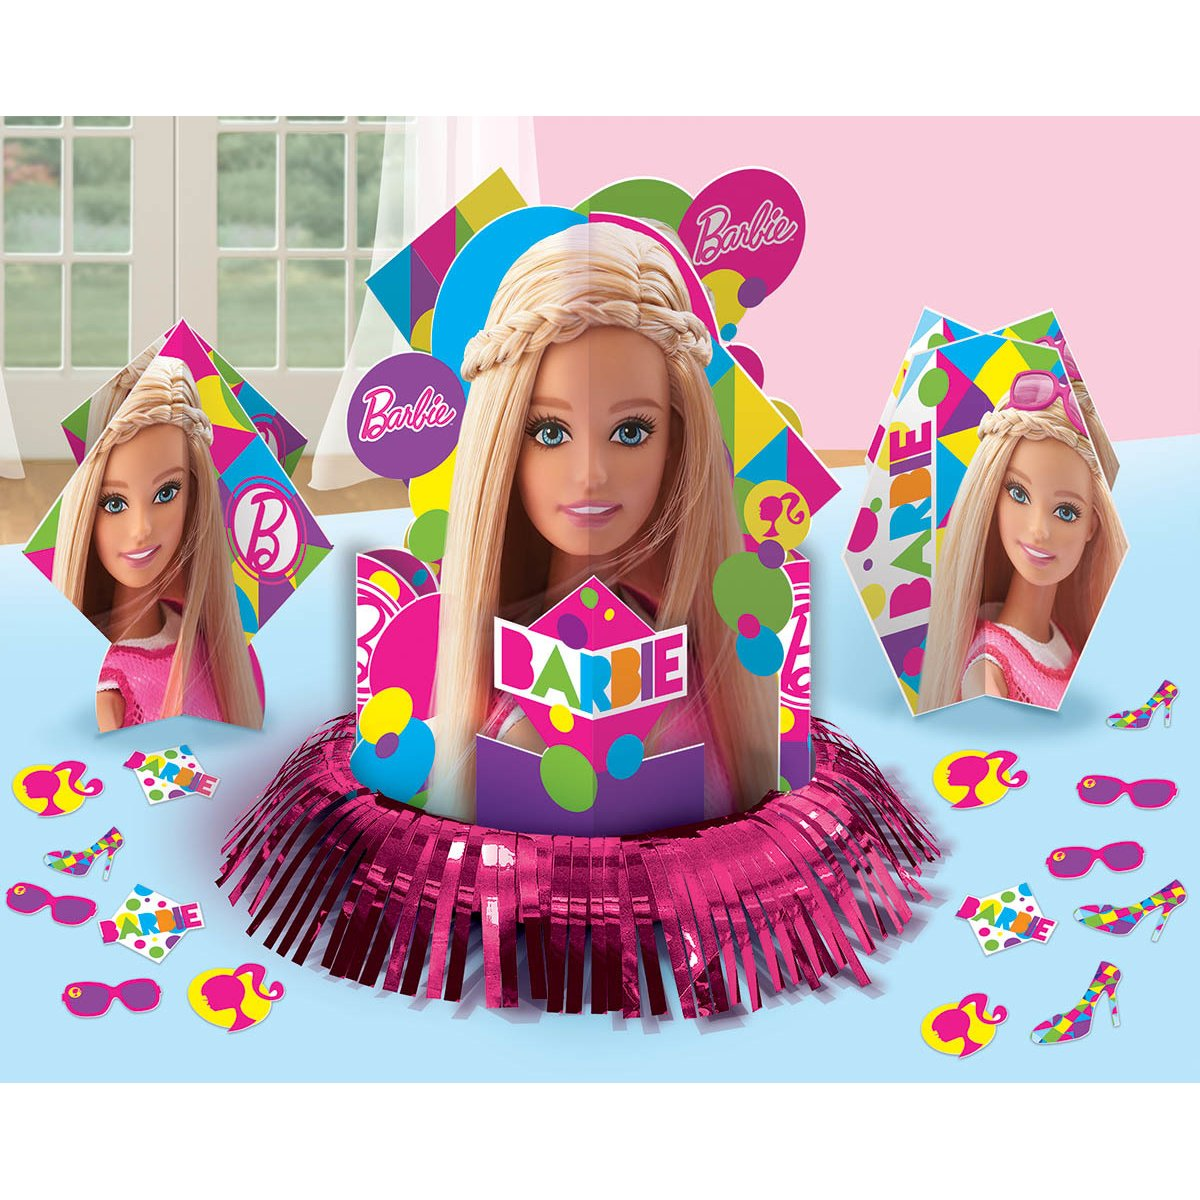 Barbie Sparkle Table Decorating Kit Assorted Birthday Party Decoration (23 Pack), Multi Color, . TradeMart Inc. 281507